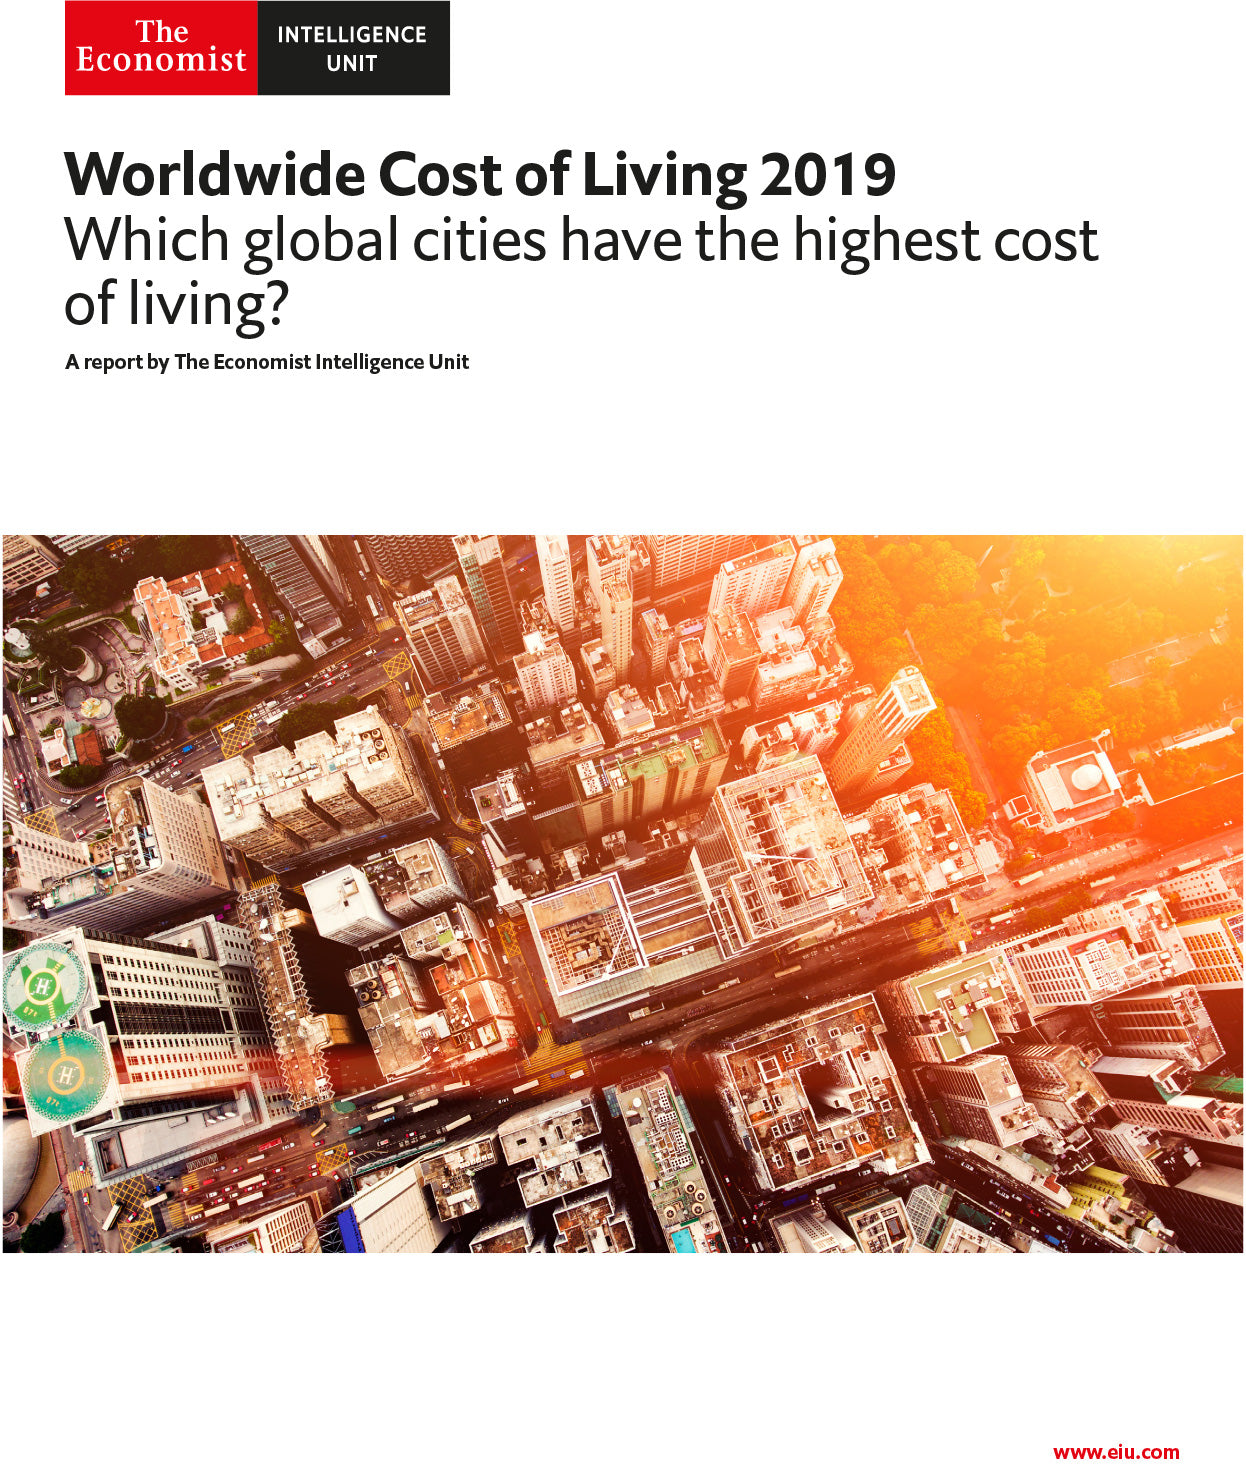 Worldwide Cost of Living 2019